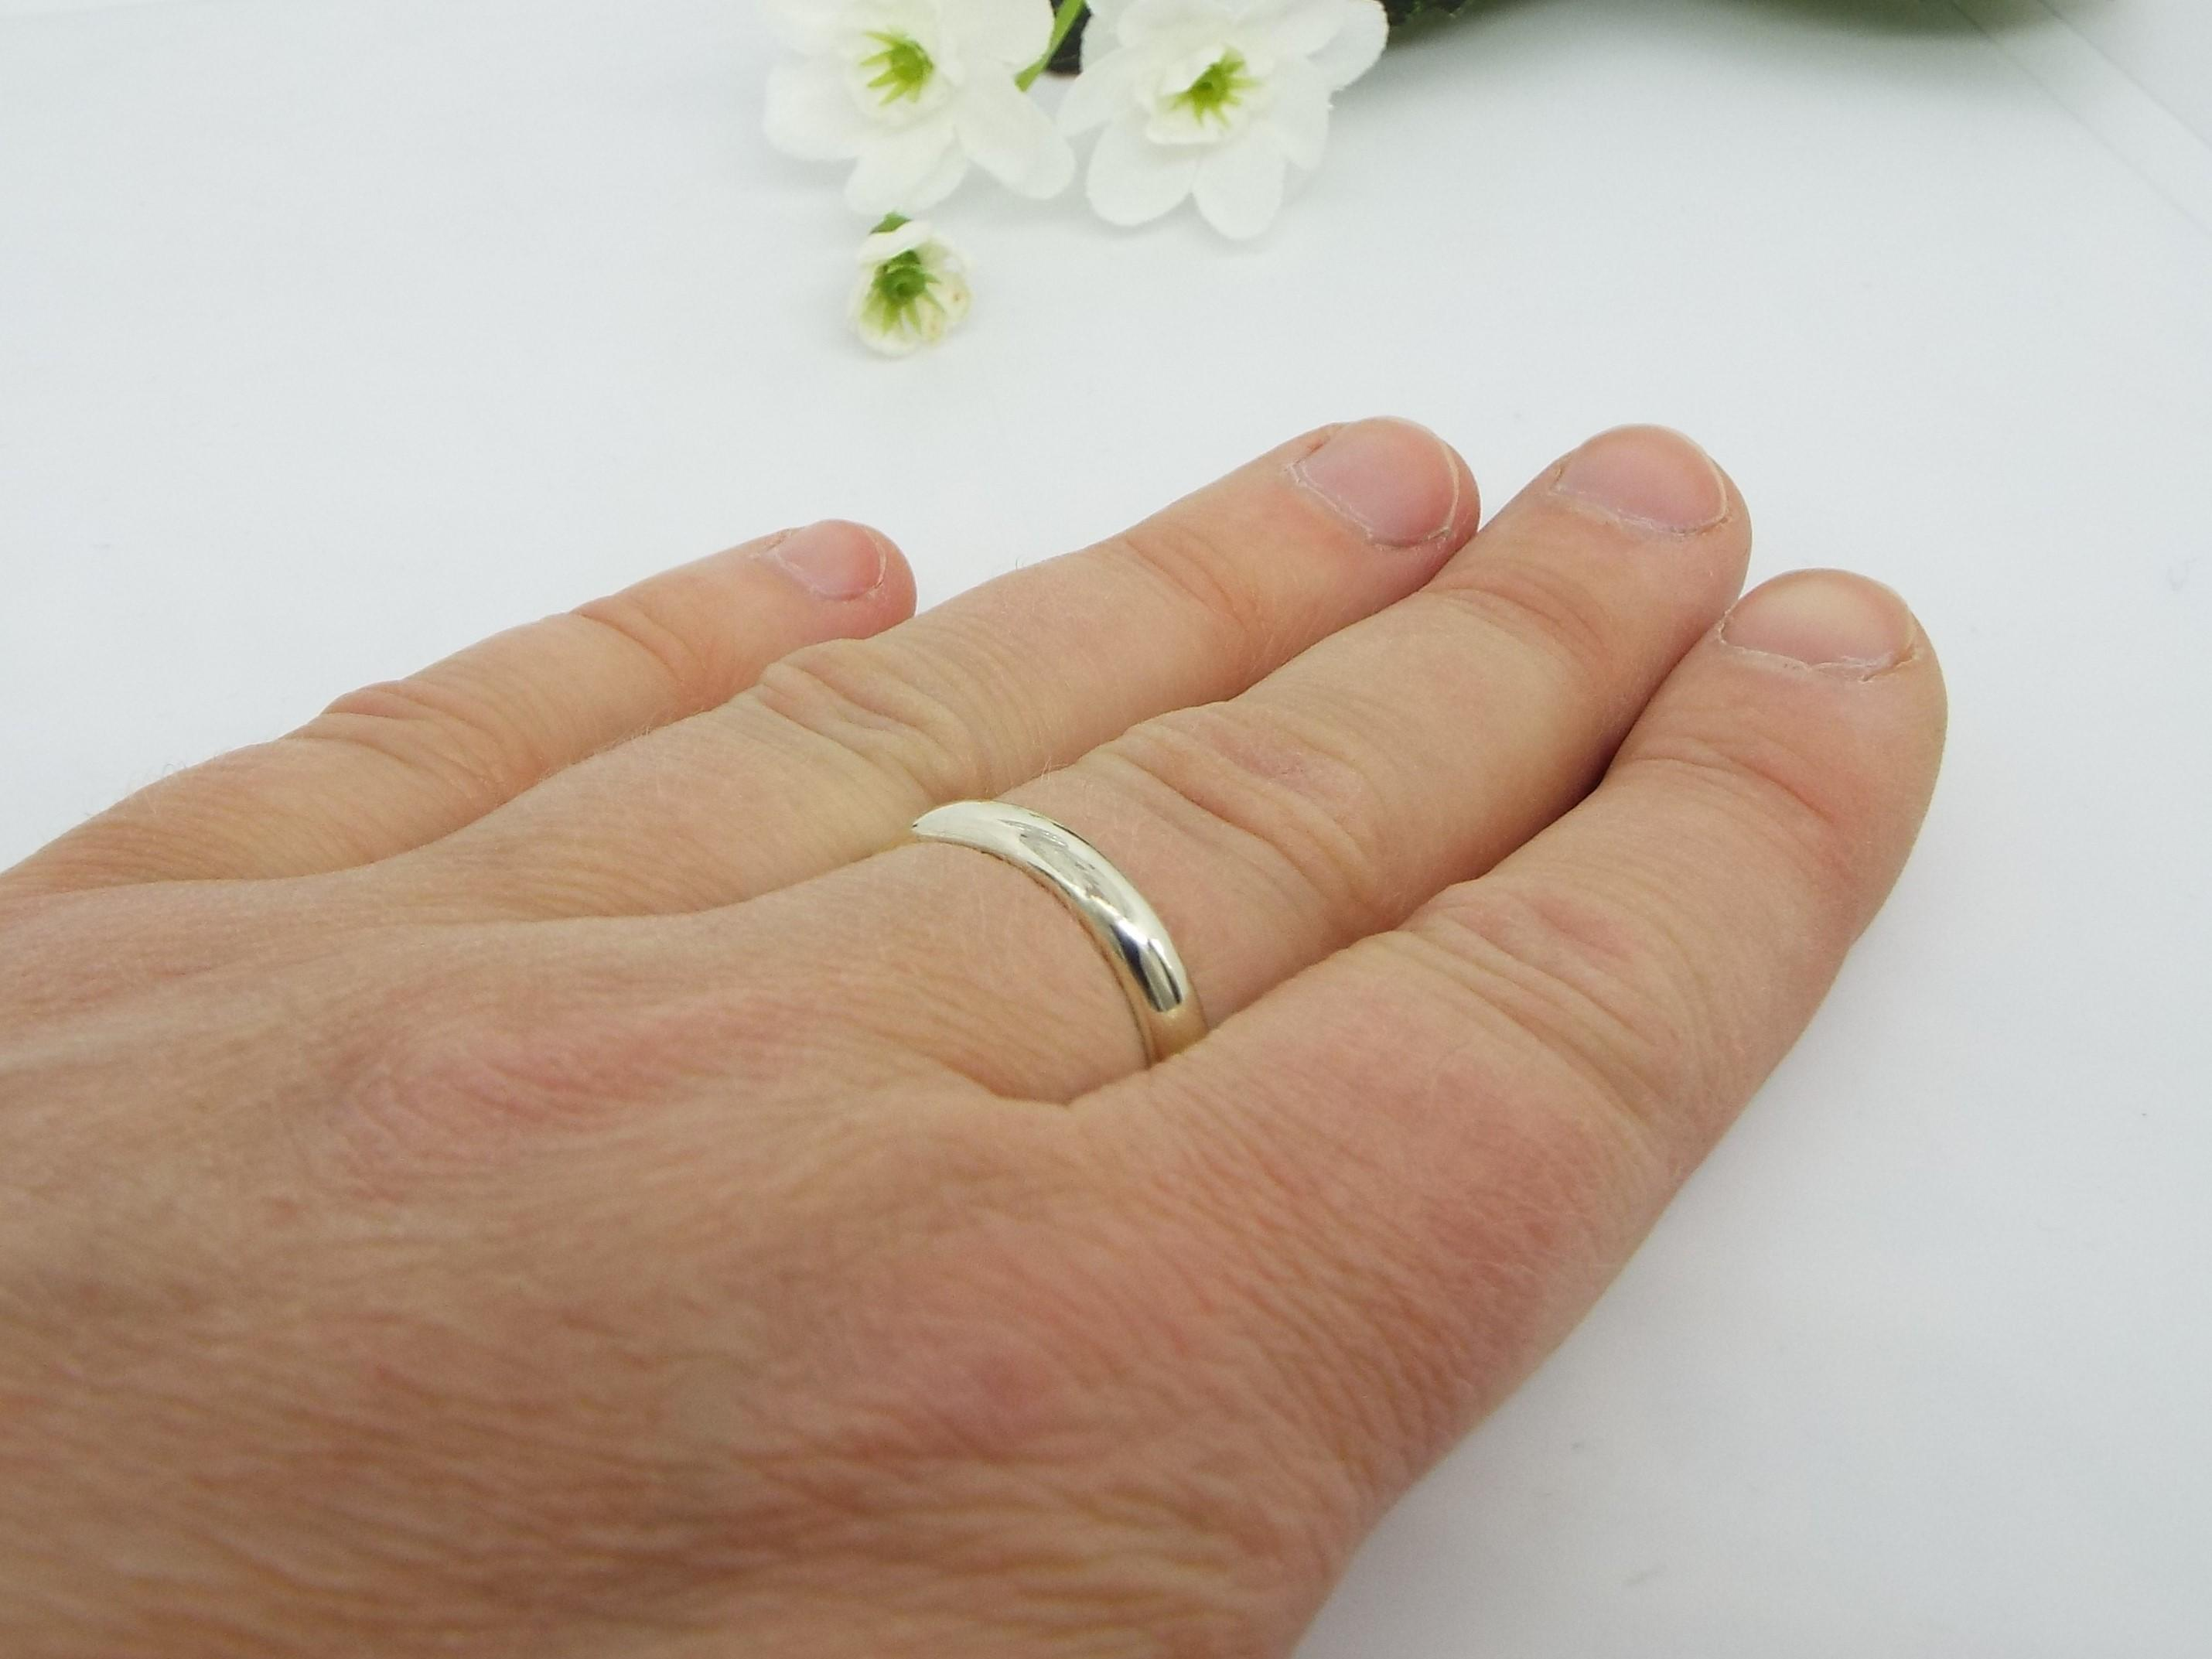 White gold wedding ring and hand